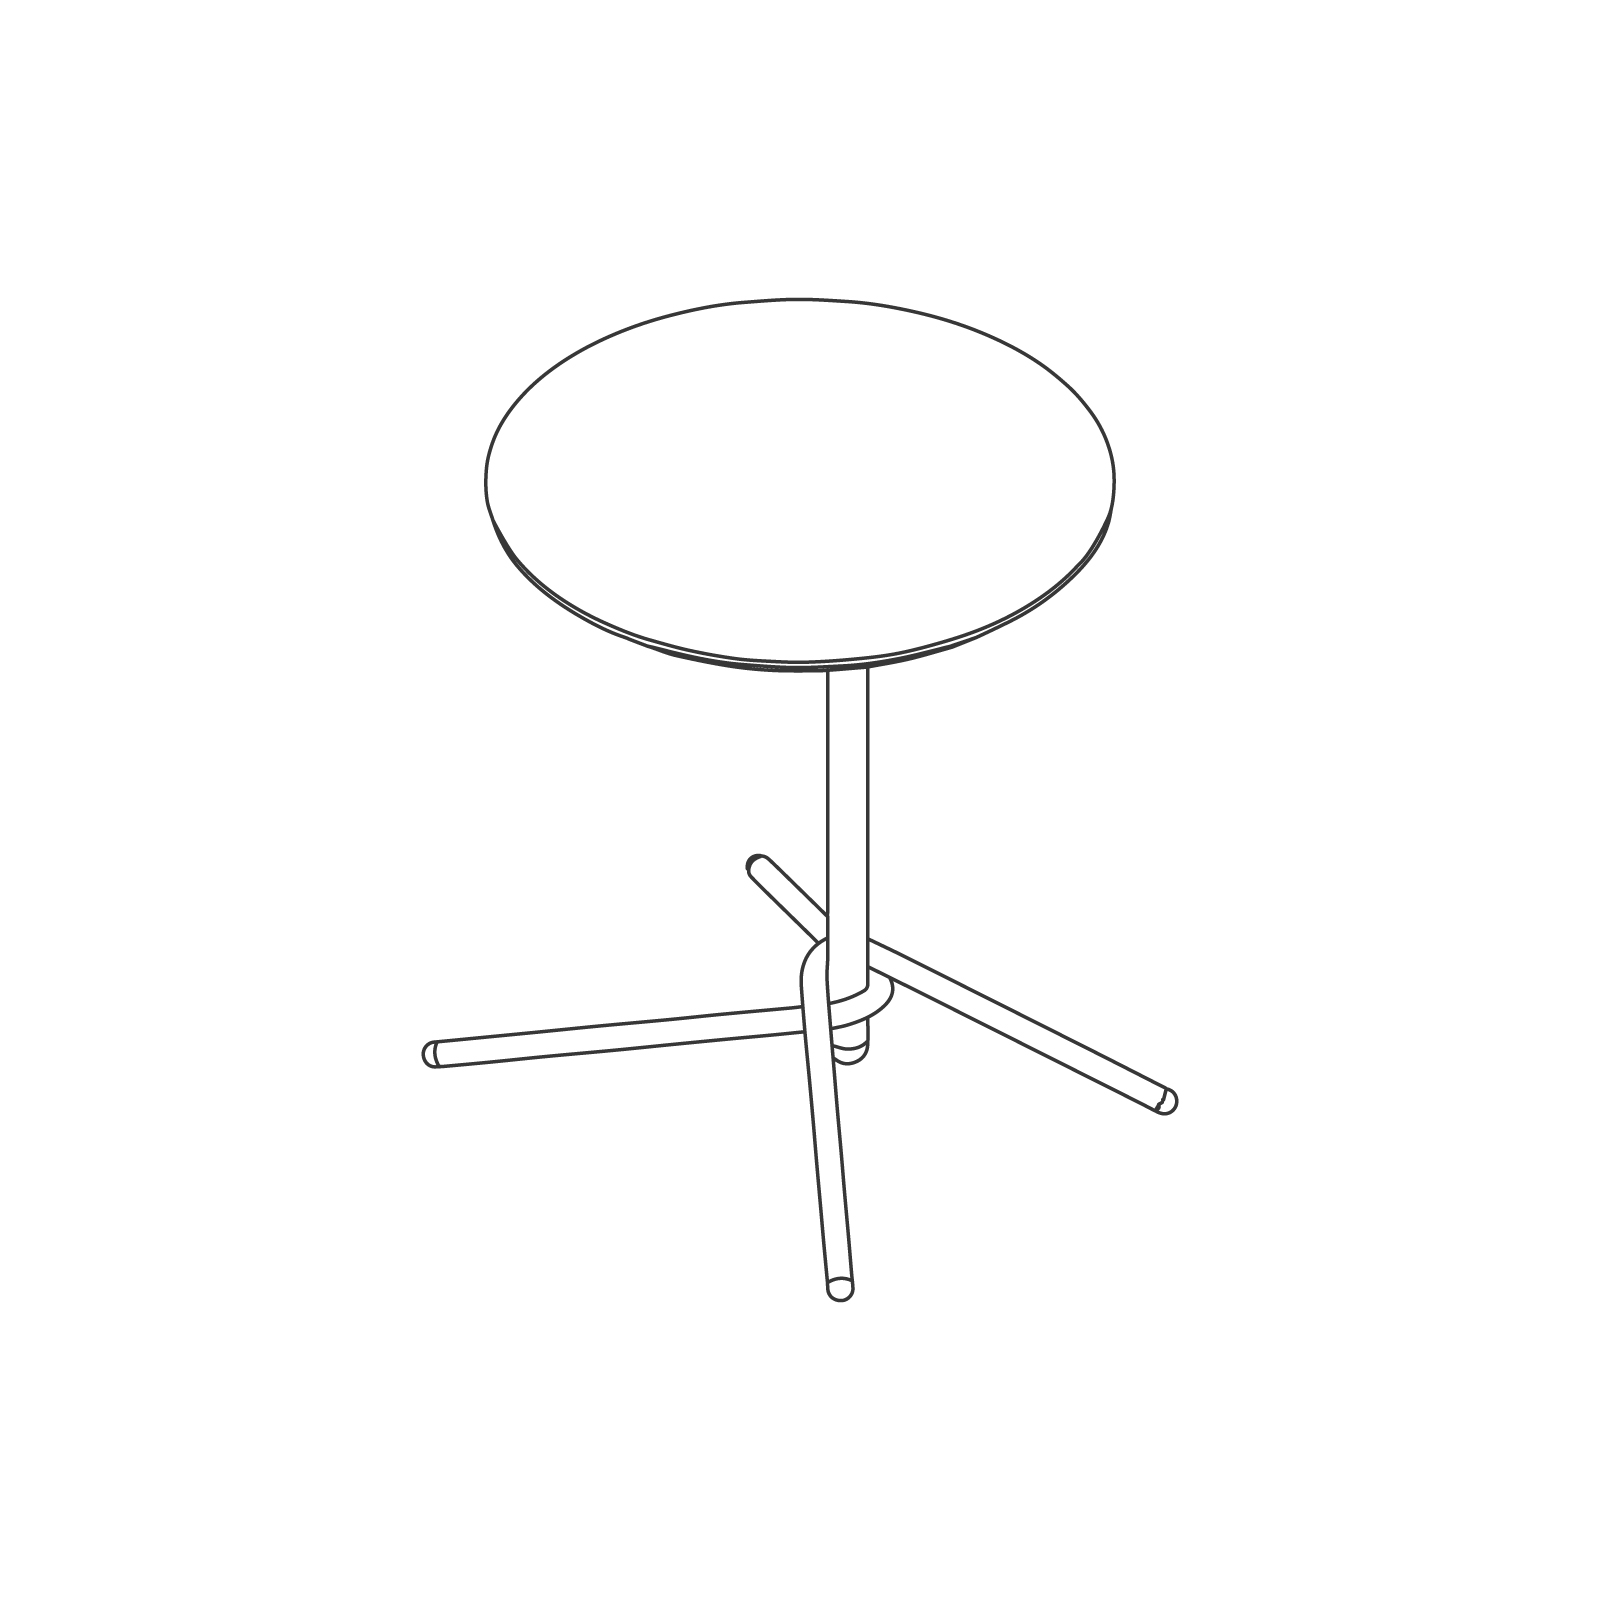 A line drawing of Knot Side Table–Round.